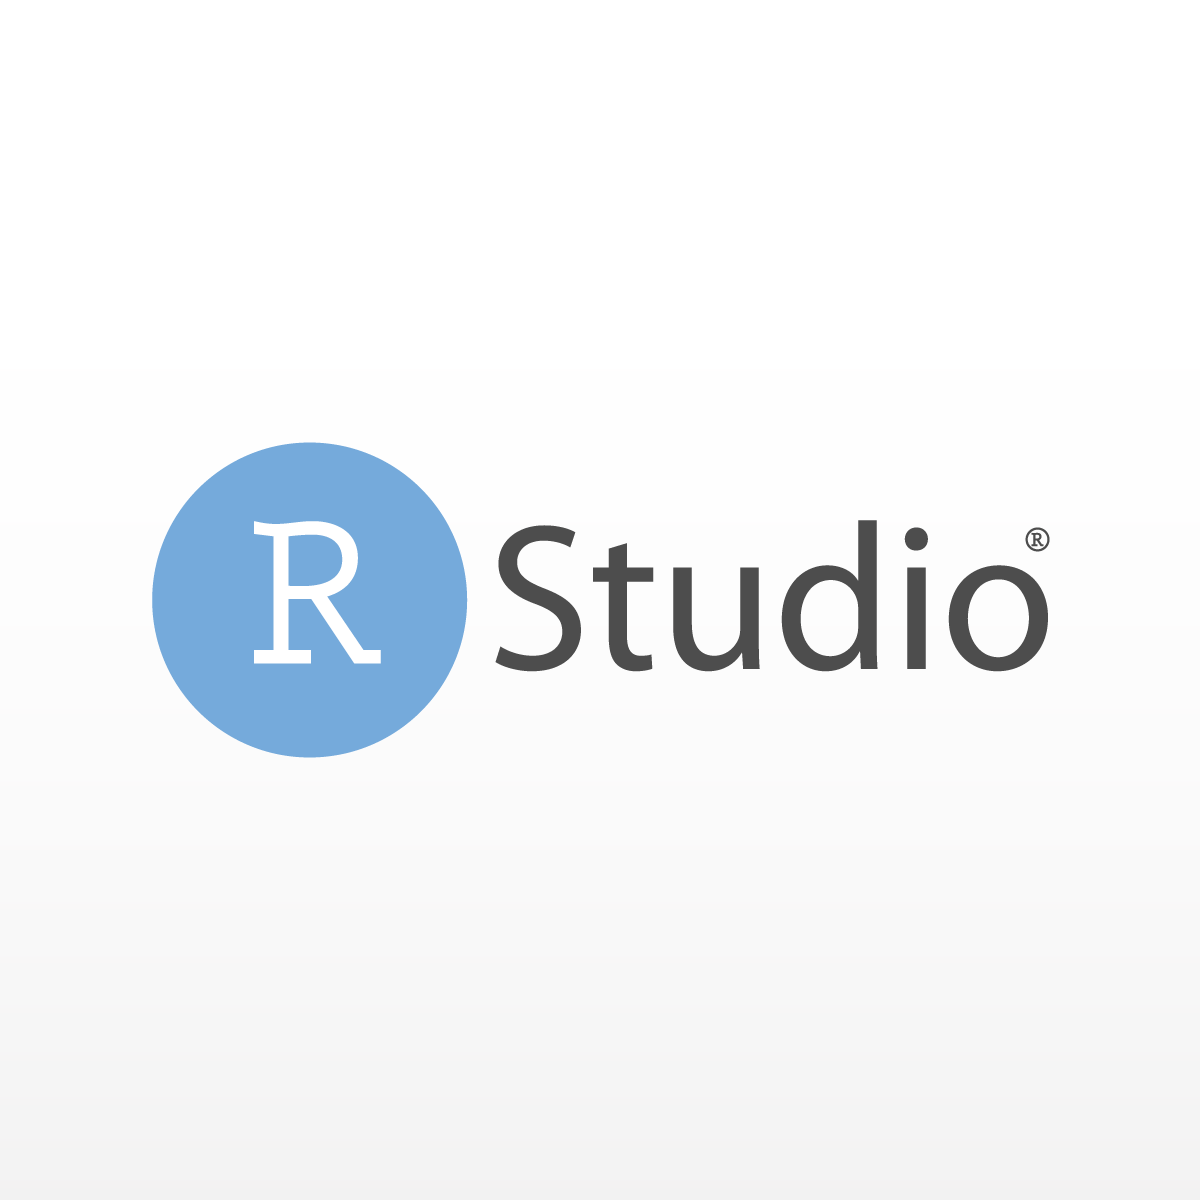 Rstudio And Rstudio Training Partners Offer Many Online Courses In R Coding Data Science Online Learning